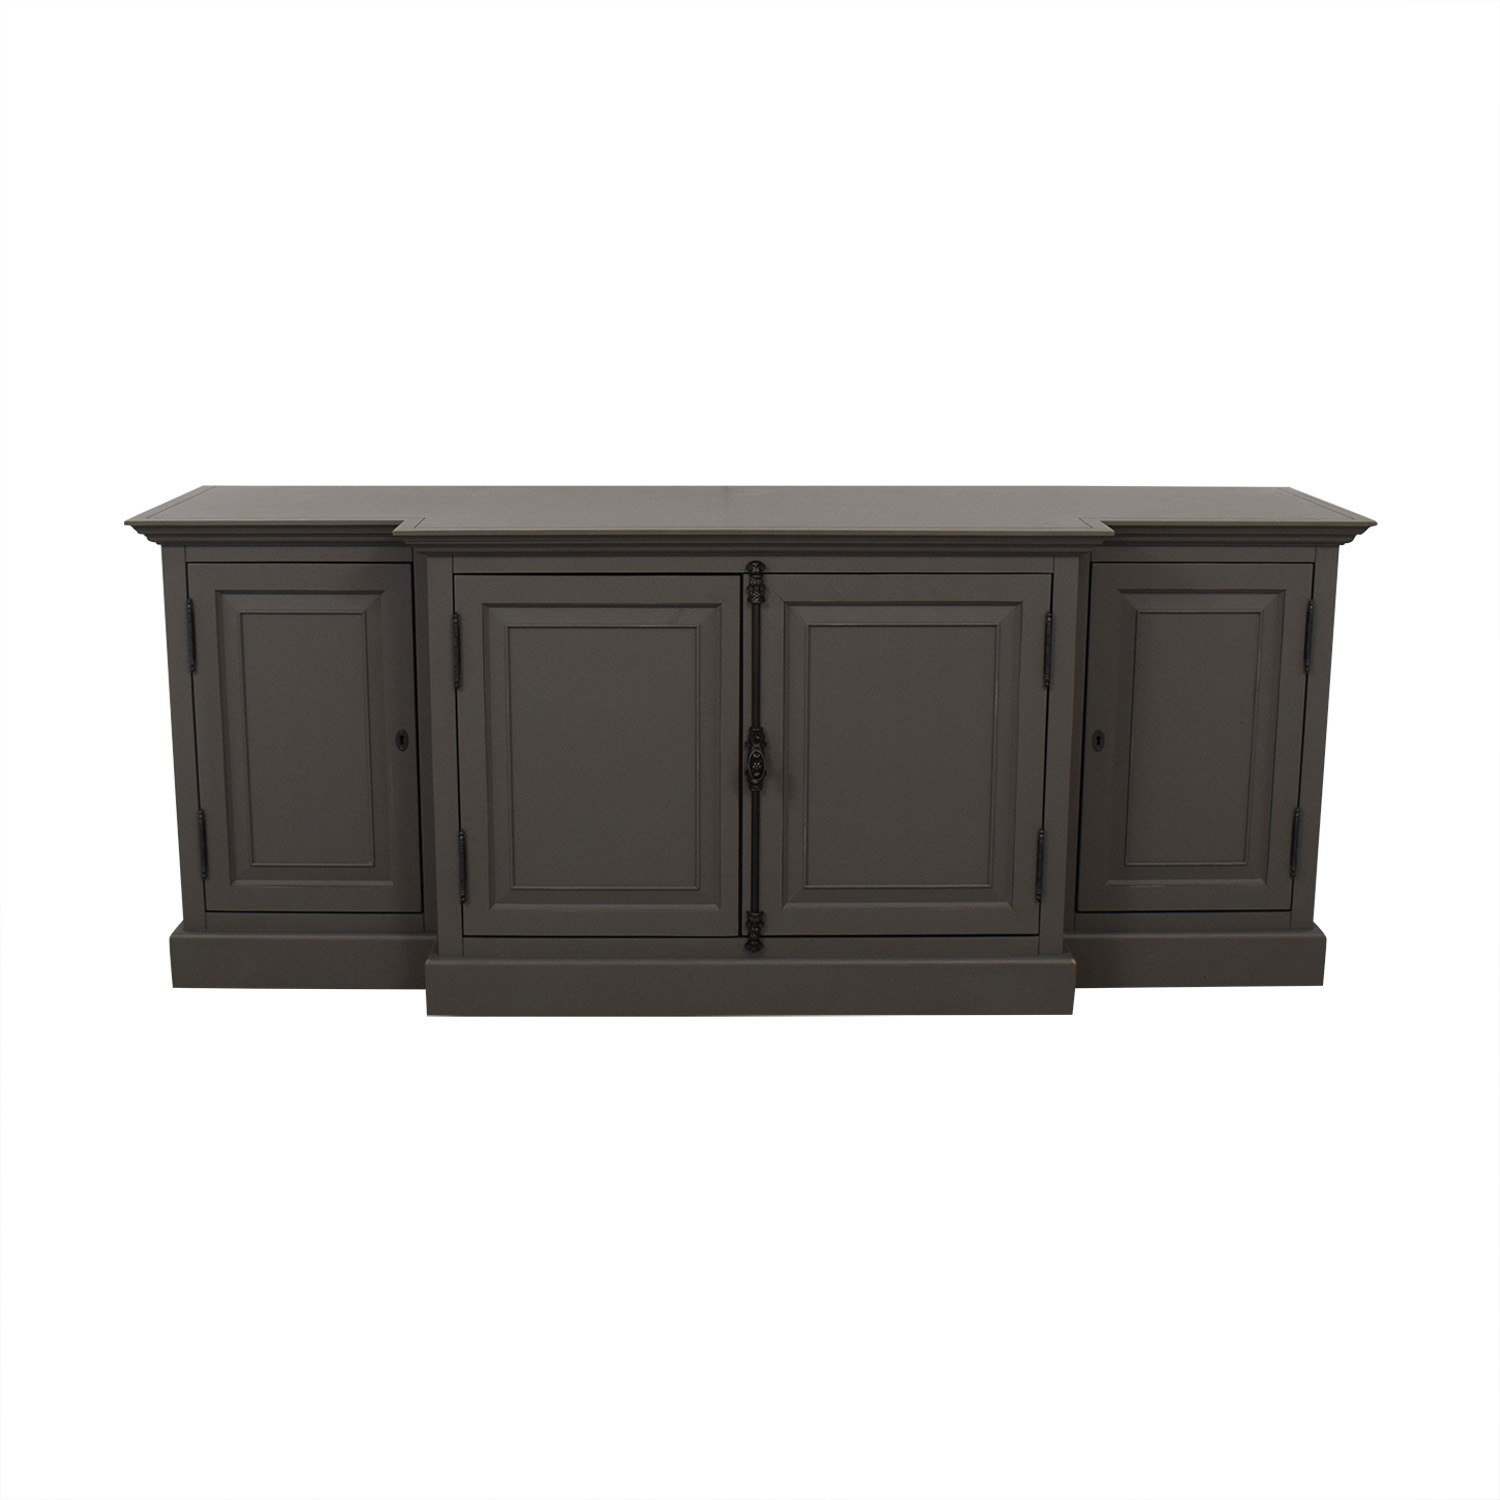 Restoration Hardware Restoration Hardware Media Console nj